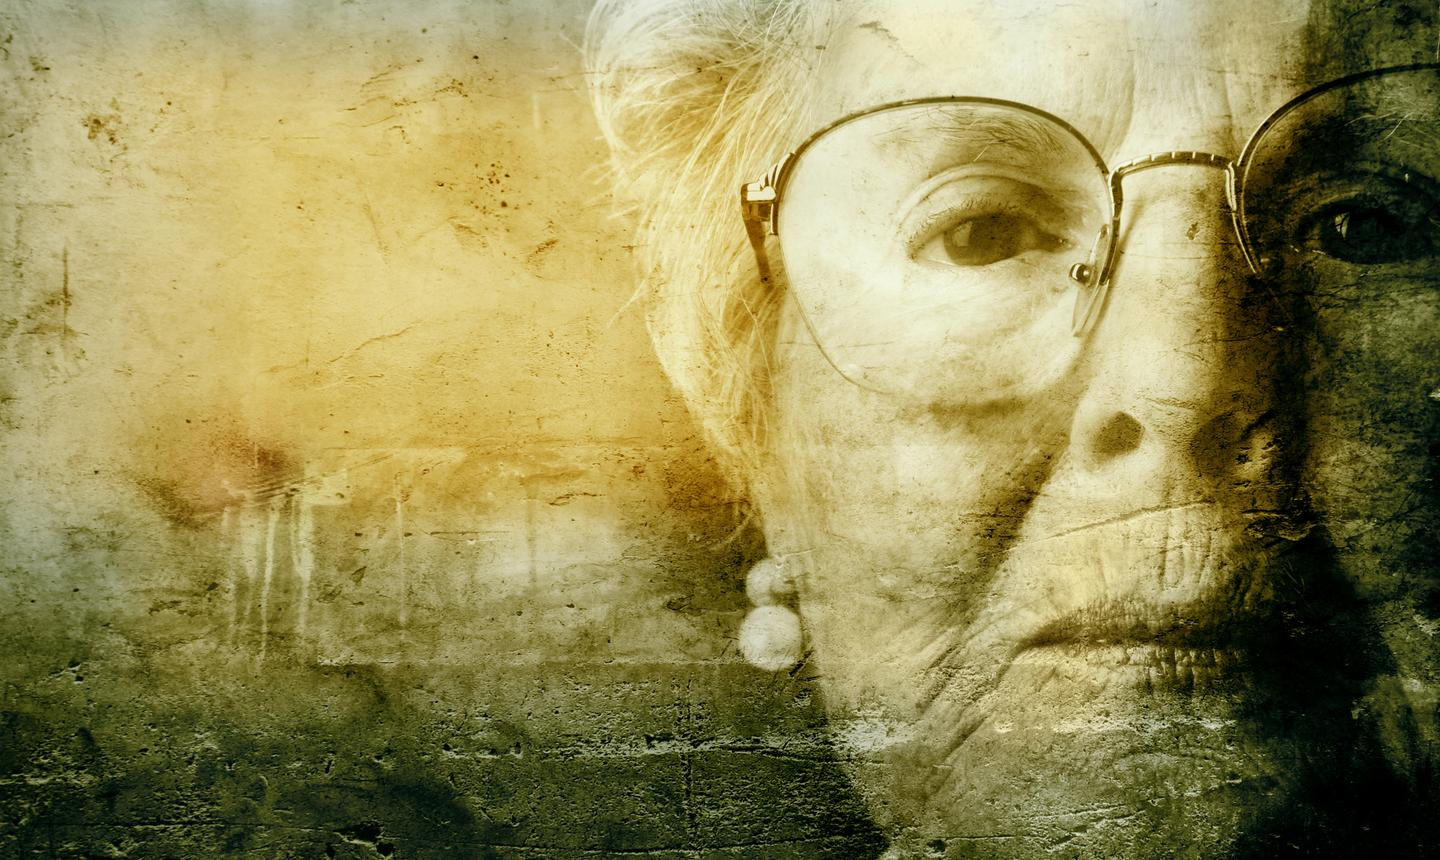 Researchers homed in on a mechanism in the visual cortex that could partly explain how superagers maintain such good memory compared to normal senior citizens